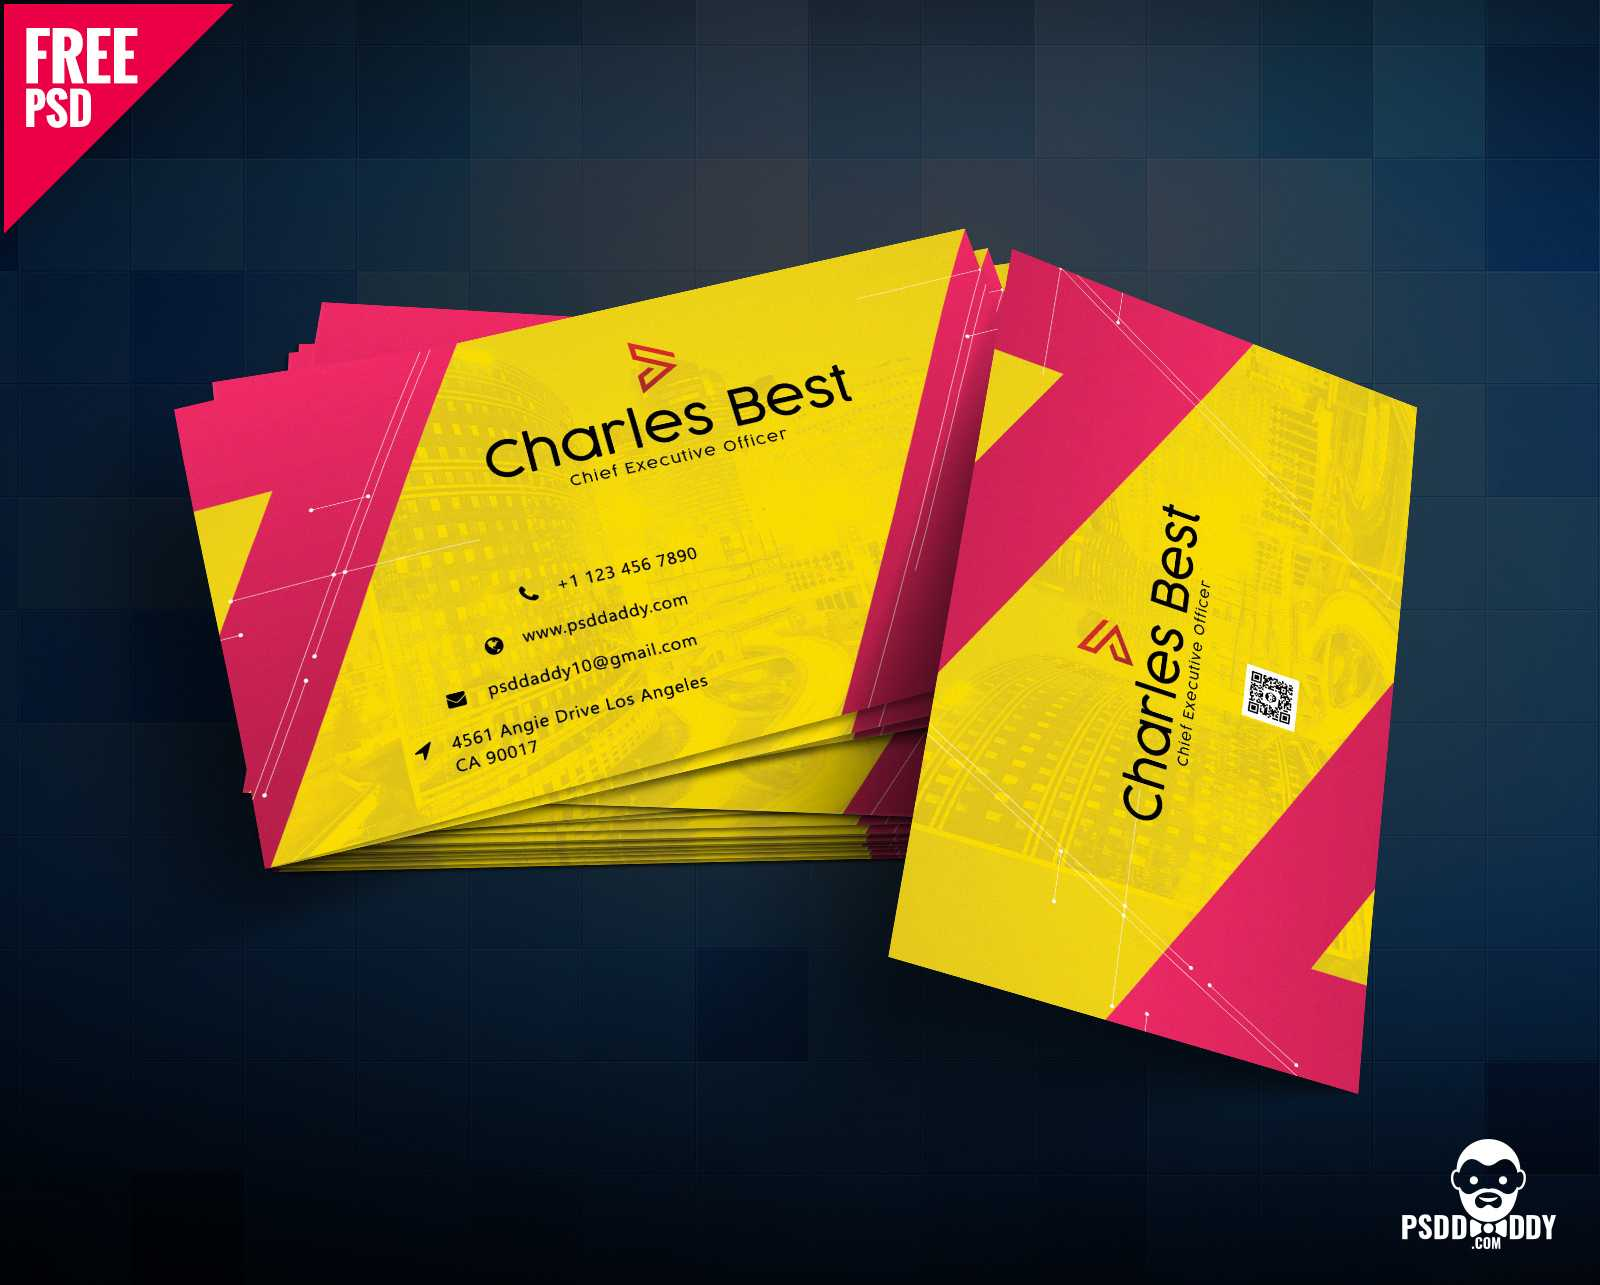 Download] Creative Business Card Free Psd | Psddaddy Inside Business Card Size Psd Template